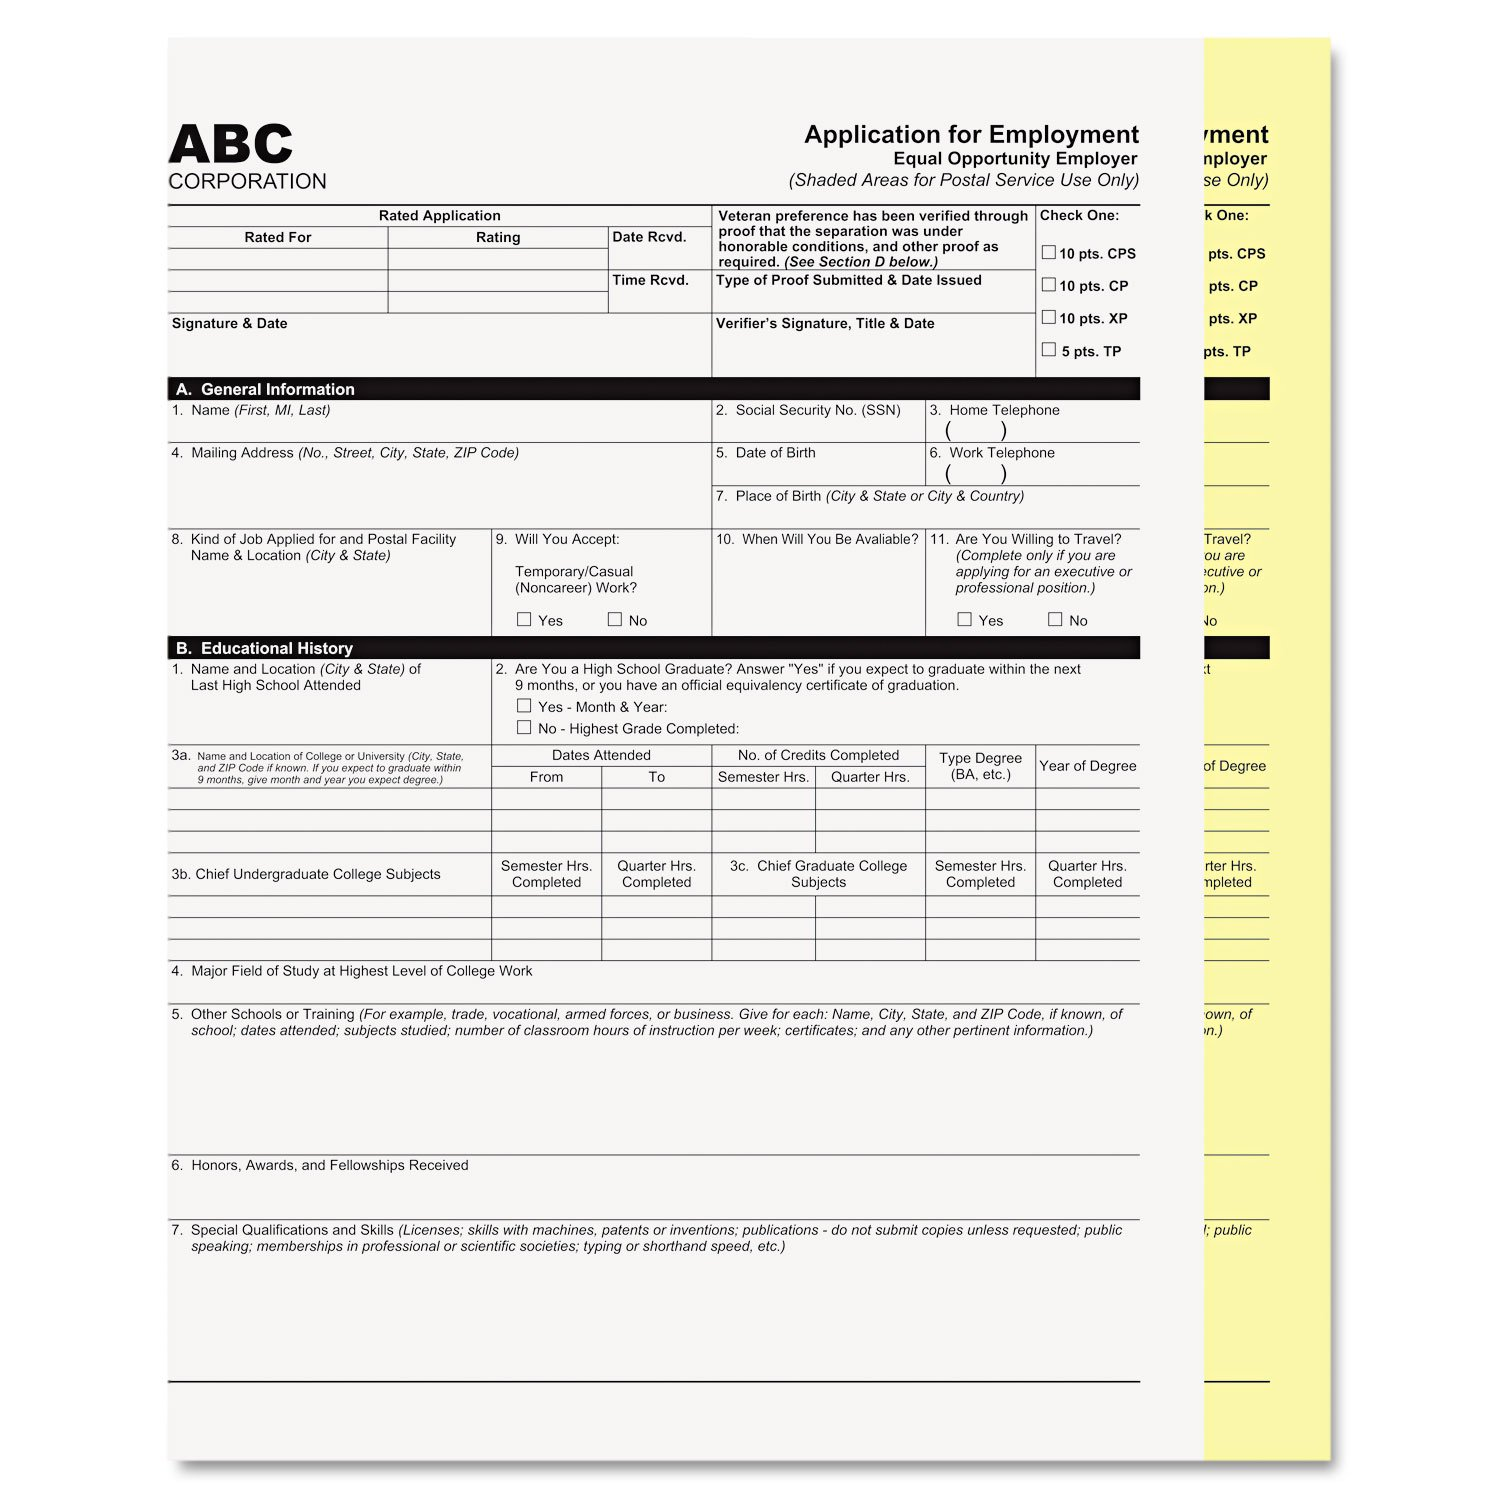 PMC59104 - Pm Company Digital Carbonless Paper 9157371